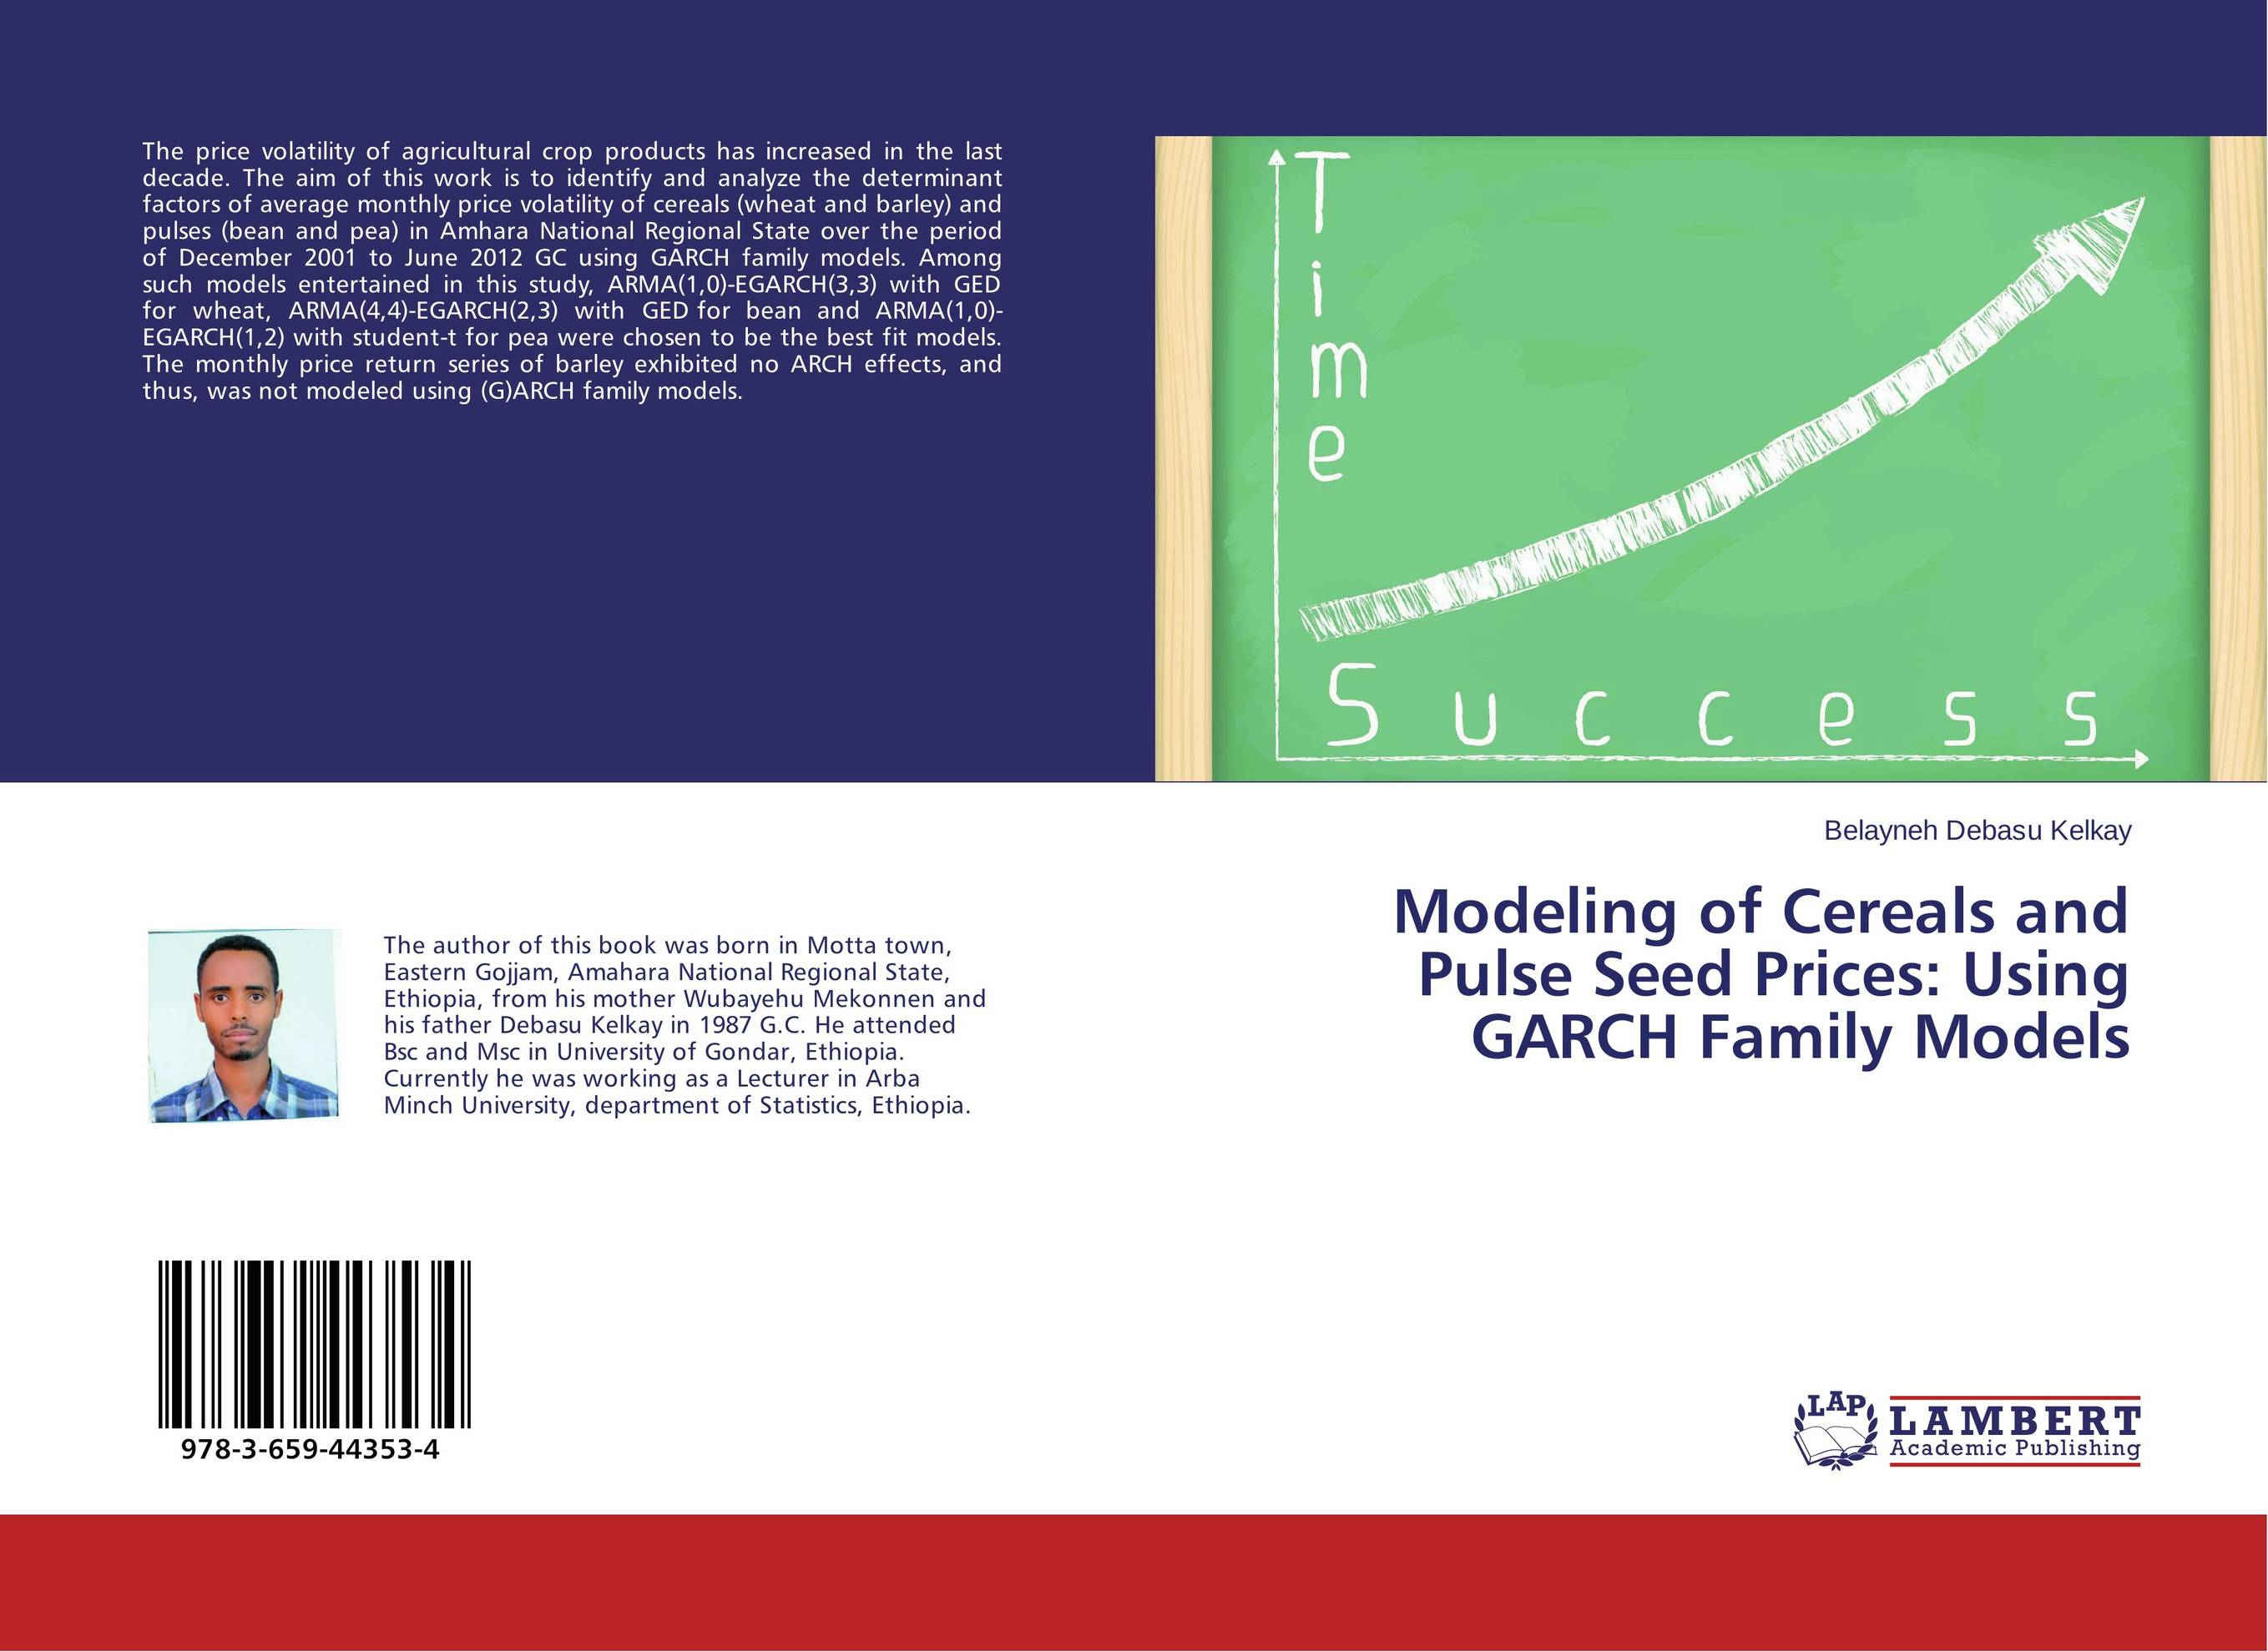 Modeling of Cereals and Pulse Seed Prices: Using GARCH Family Models